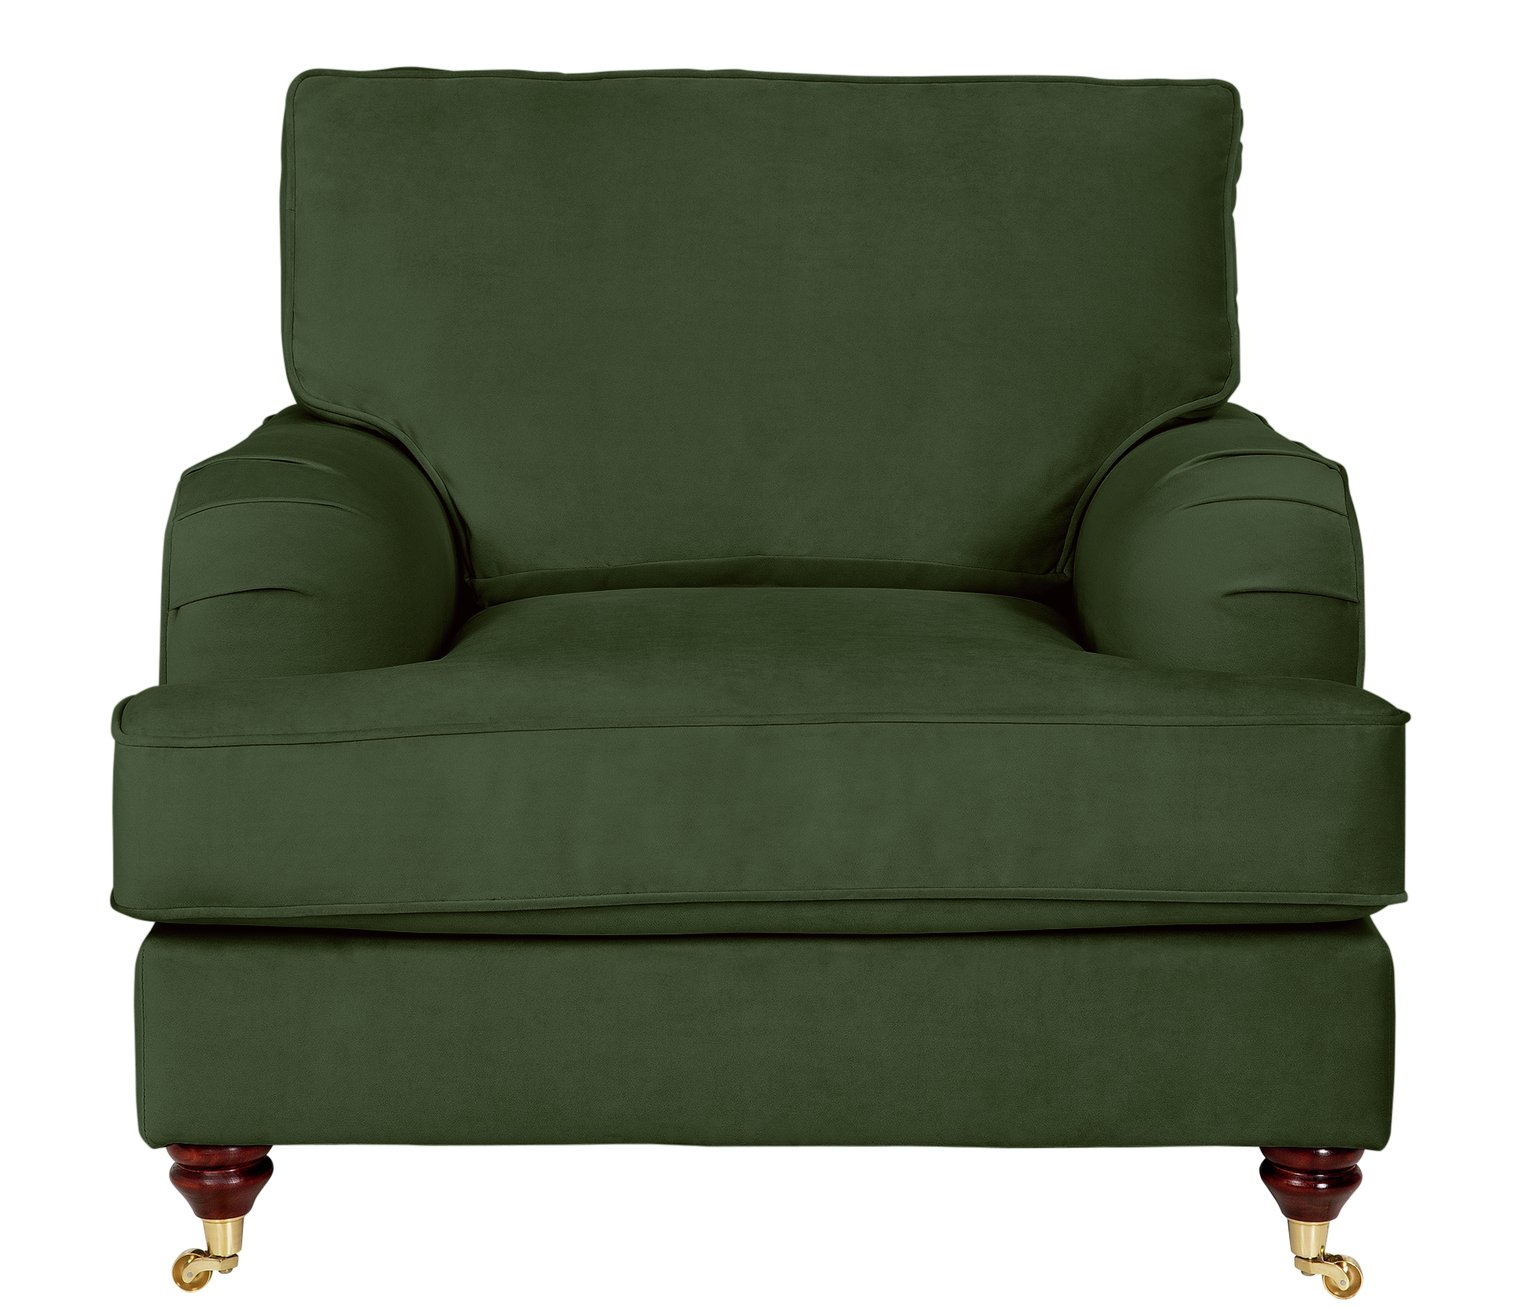 Argos Home Abberton Velvet Armchair - Green